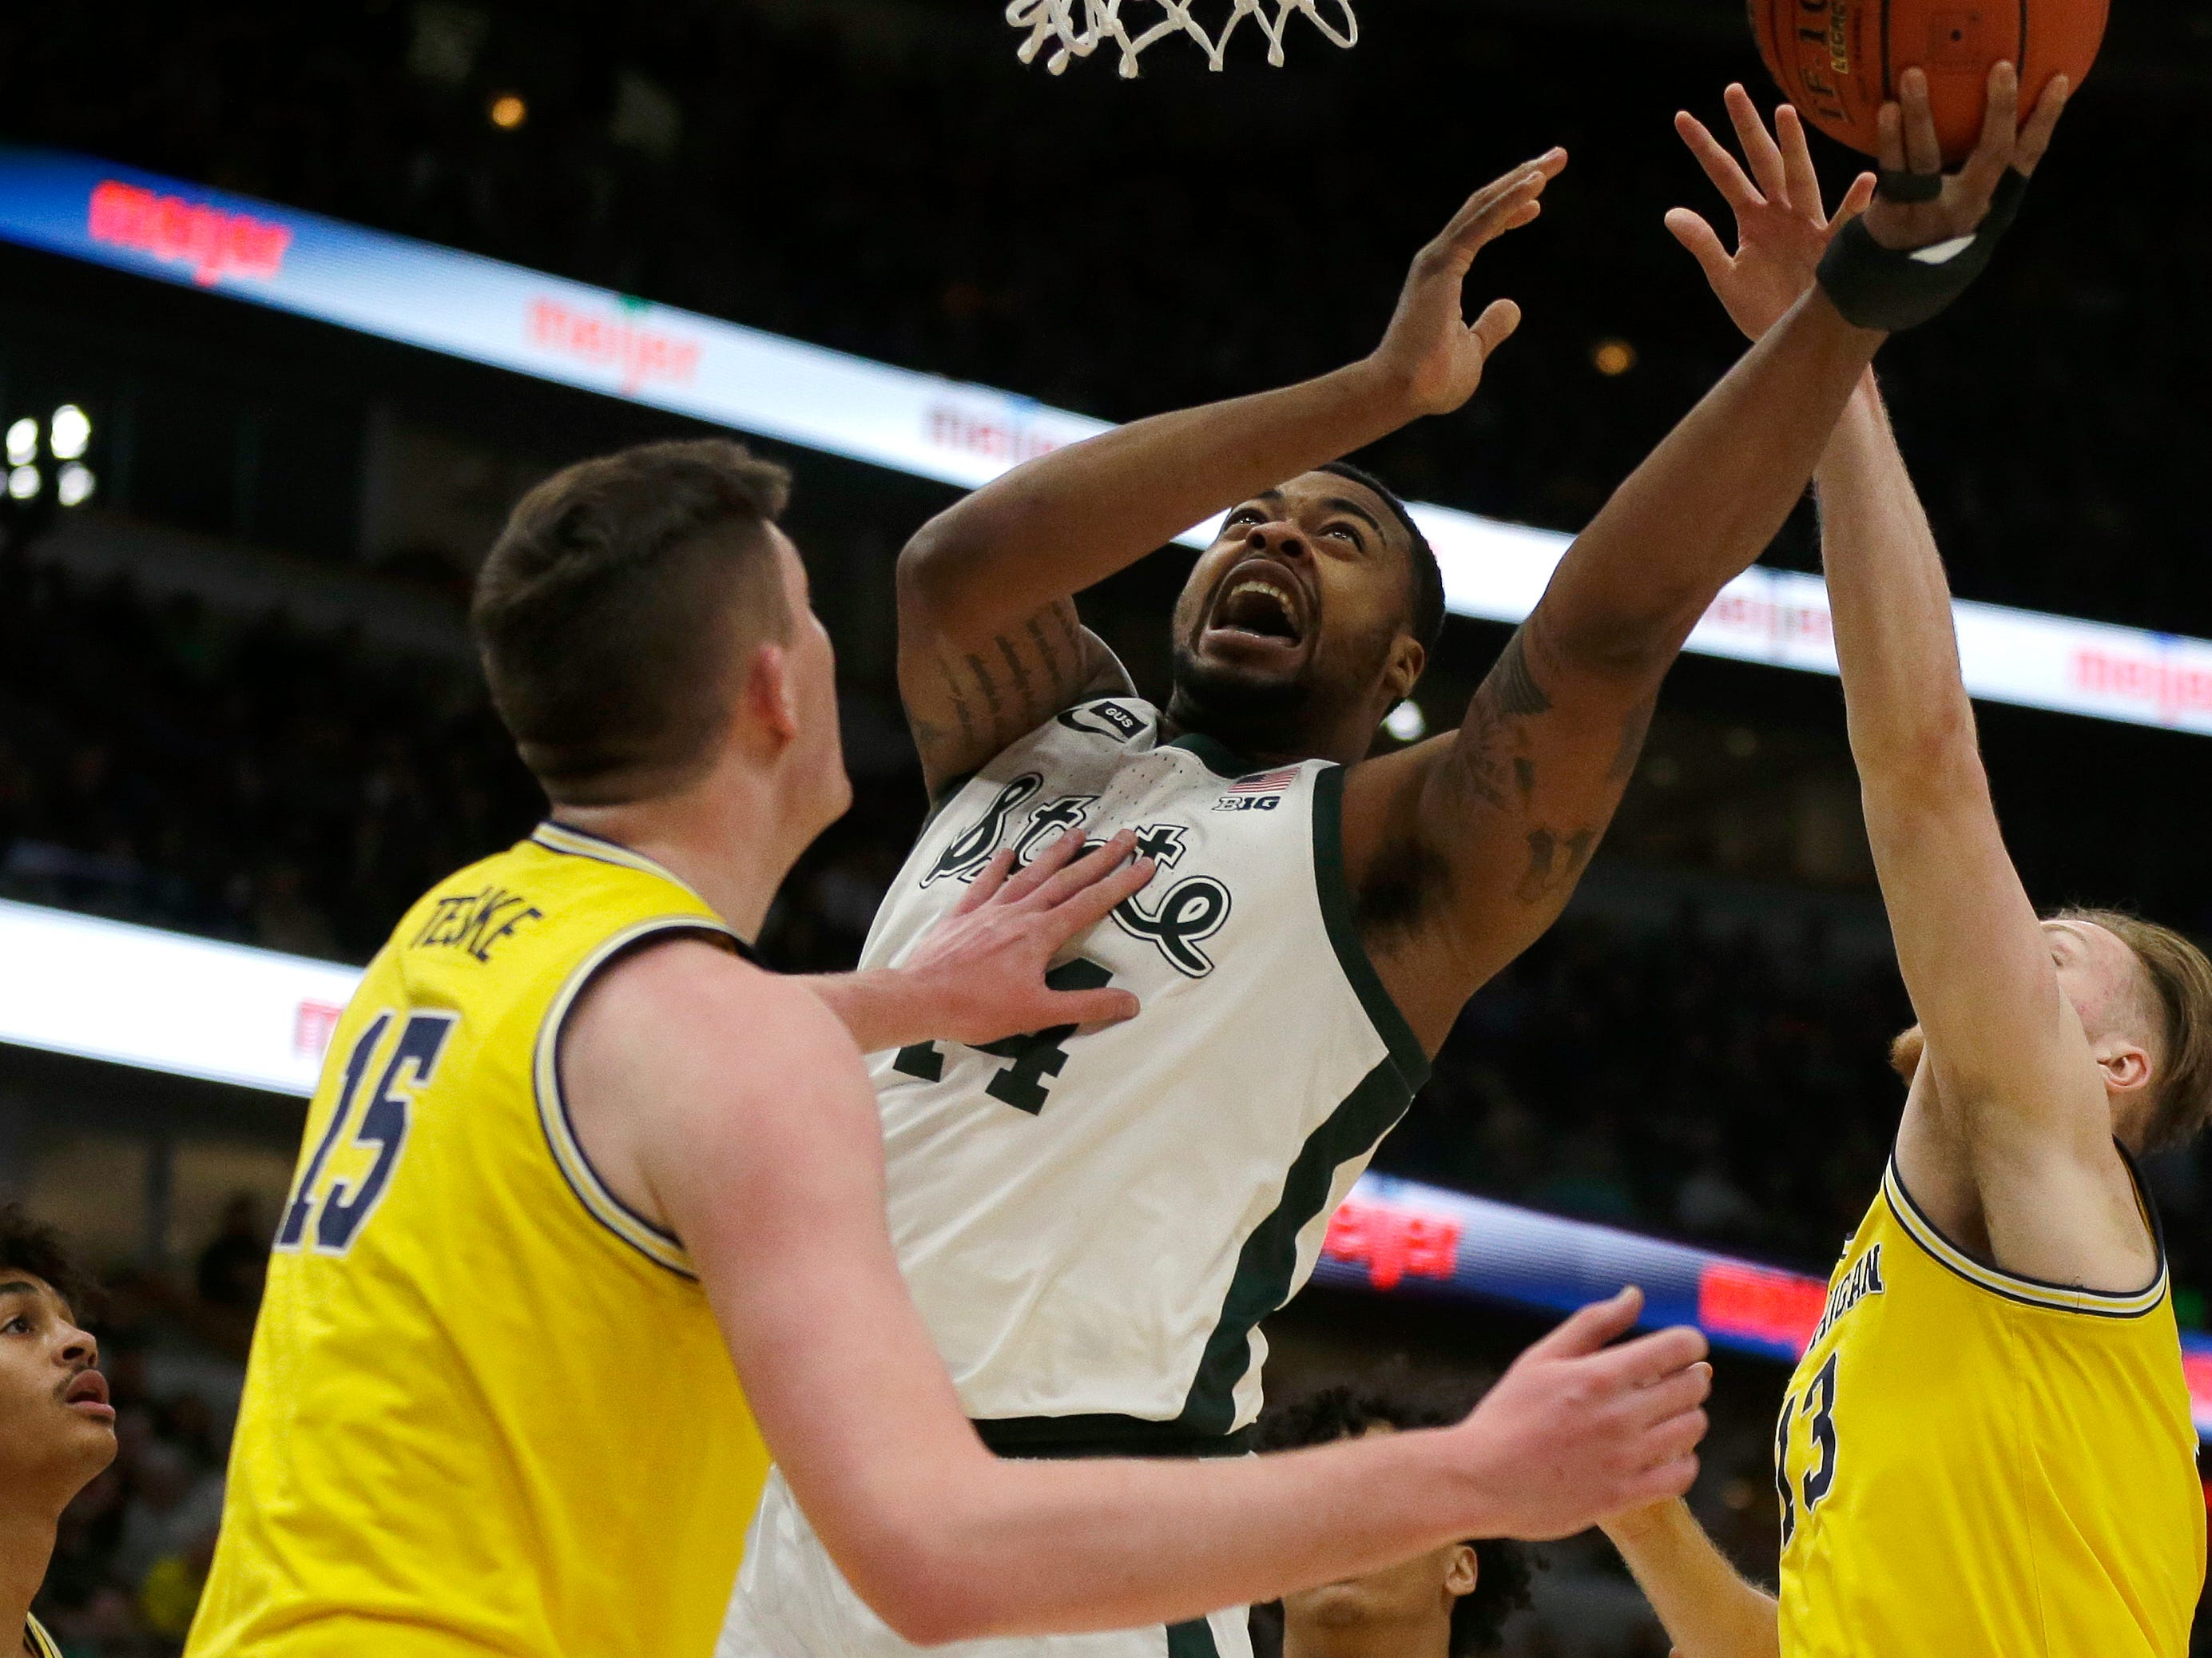 Michigan State's Nick Ward (44) goes up for a shot against Michigan's Jon Teske (15) and Ignas Brazdeikis (13) during the first half.